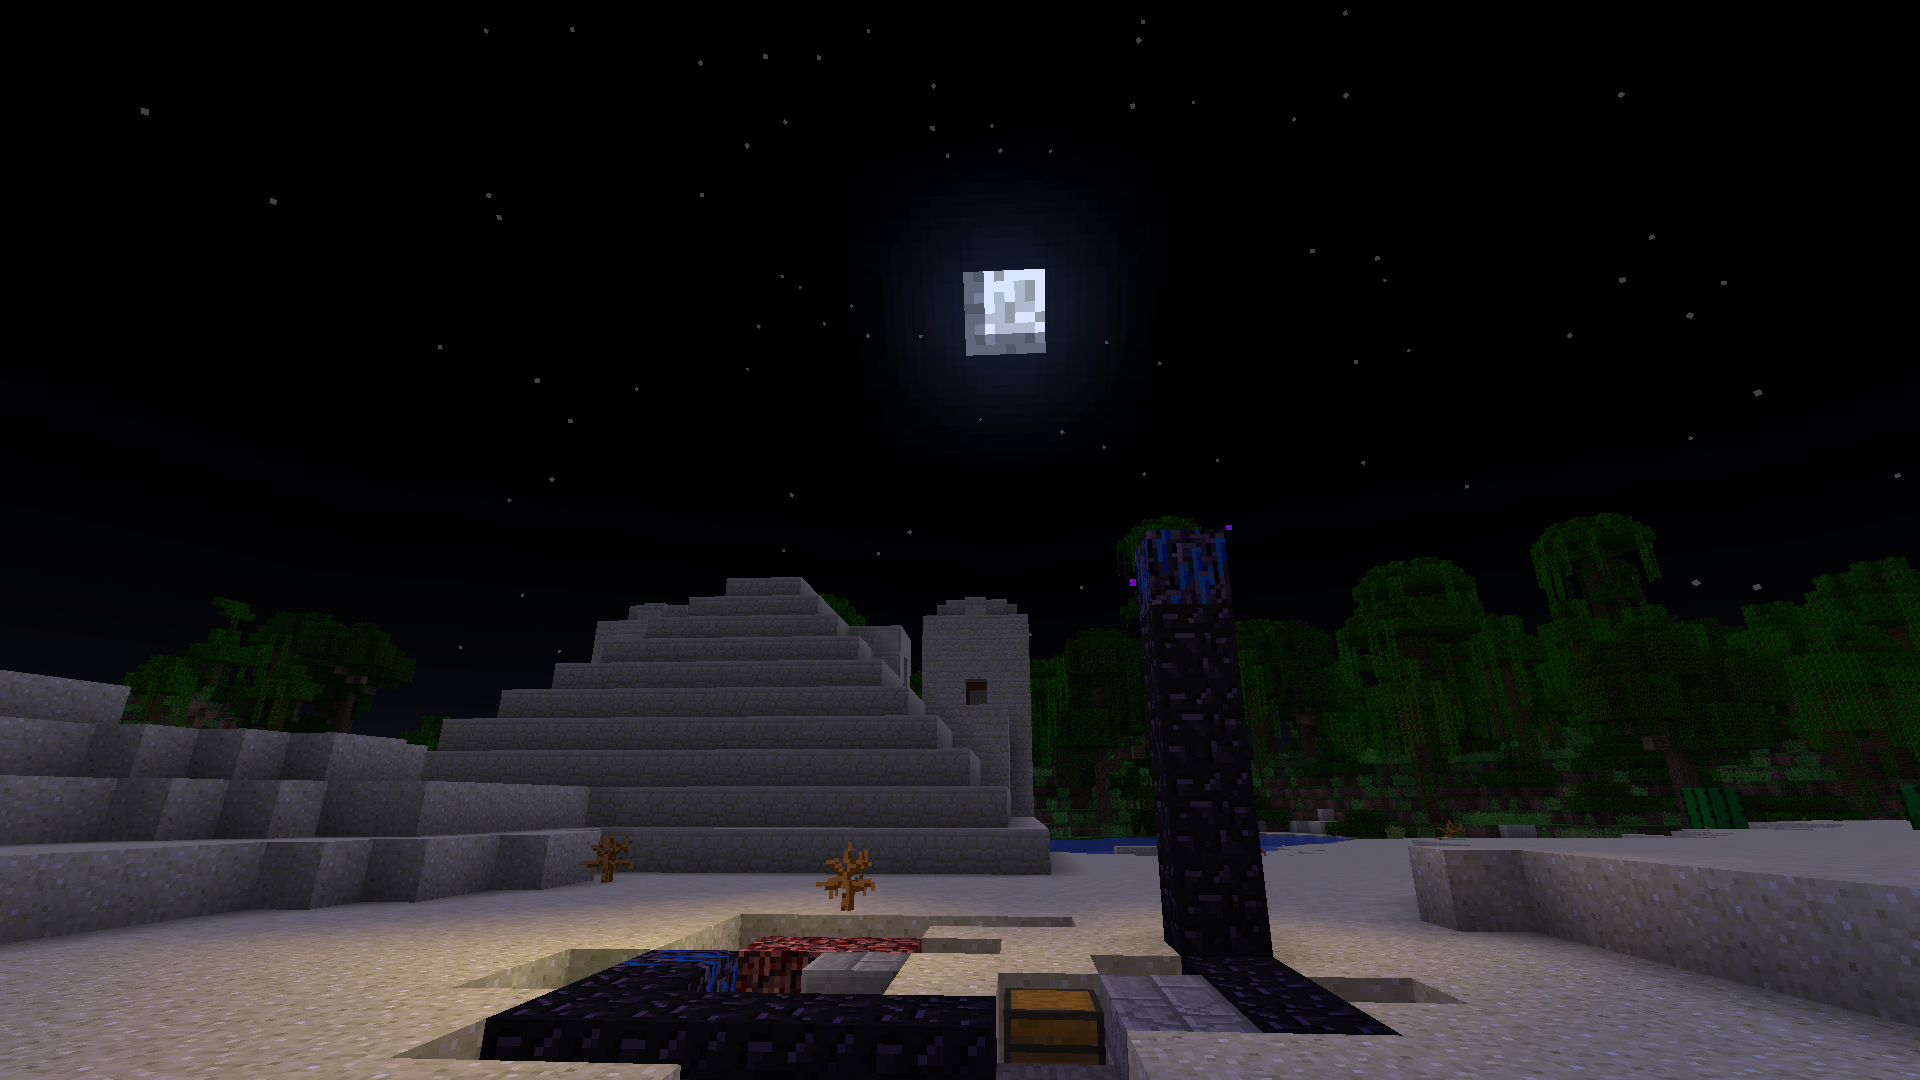 A Desert Temple at Night